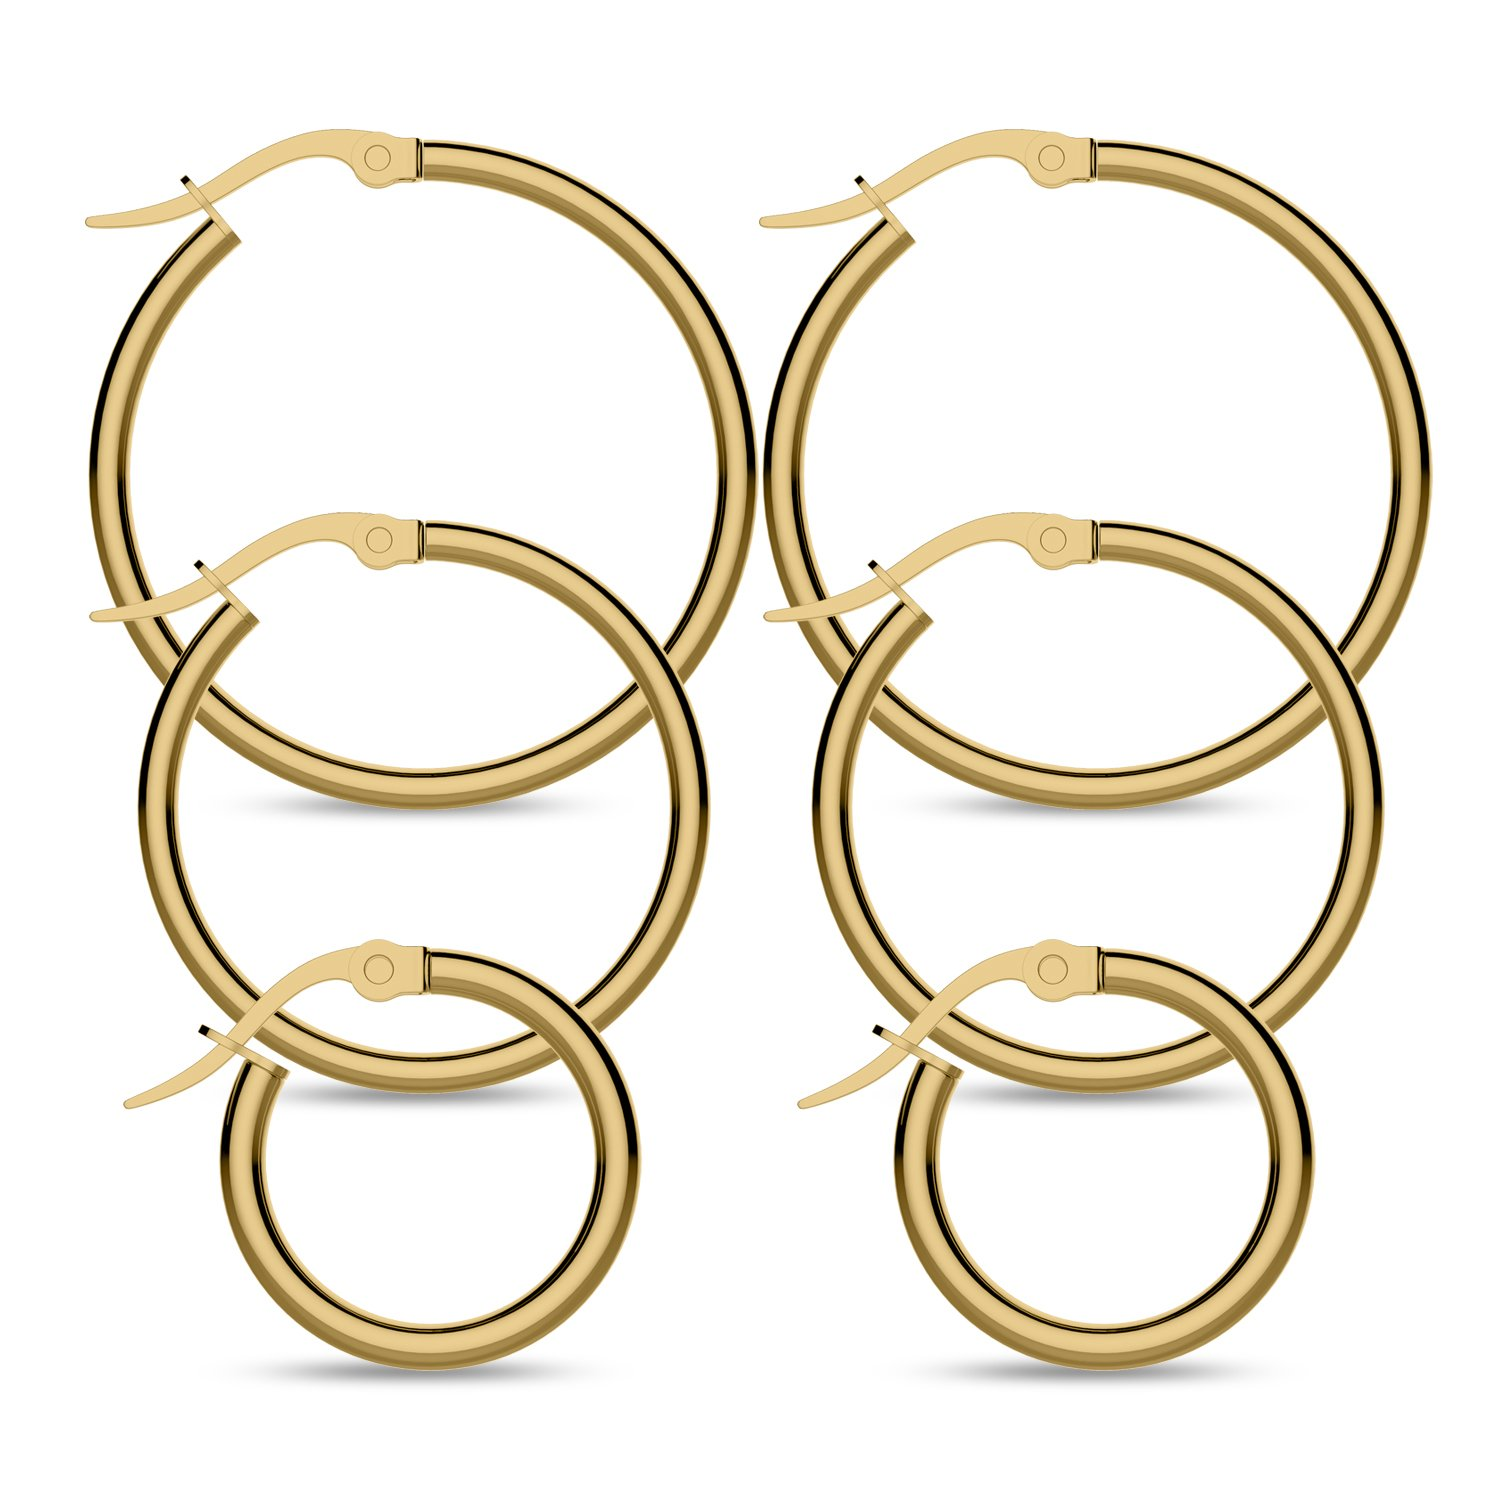 Hoop Earring,UHIBROS Stainless Steel Teardrop Hoop Earring Sets for Women Hypoallergenic 3 Pairs (Teardrop Hoop Earring Gold)